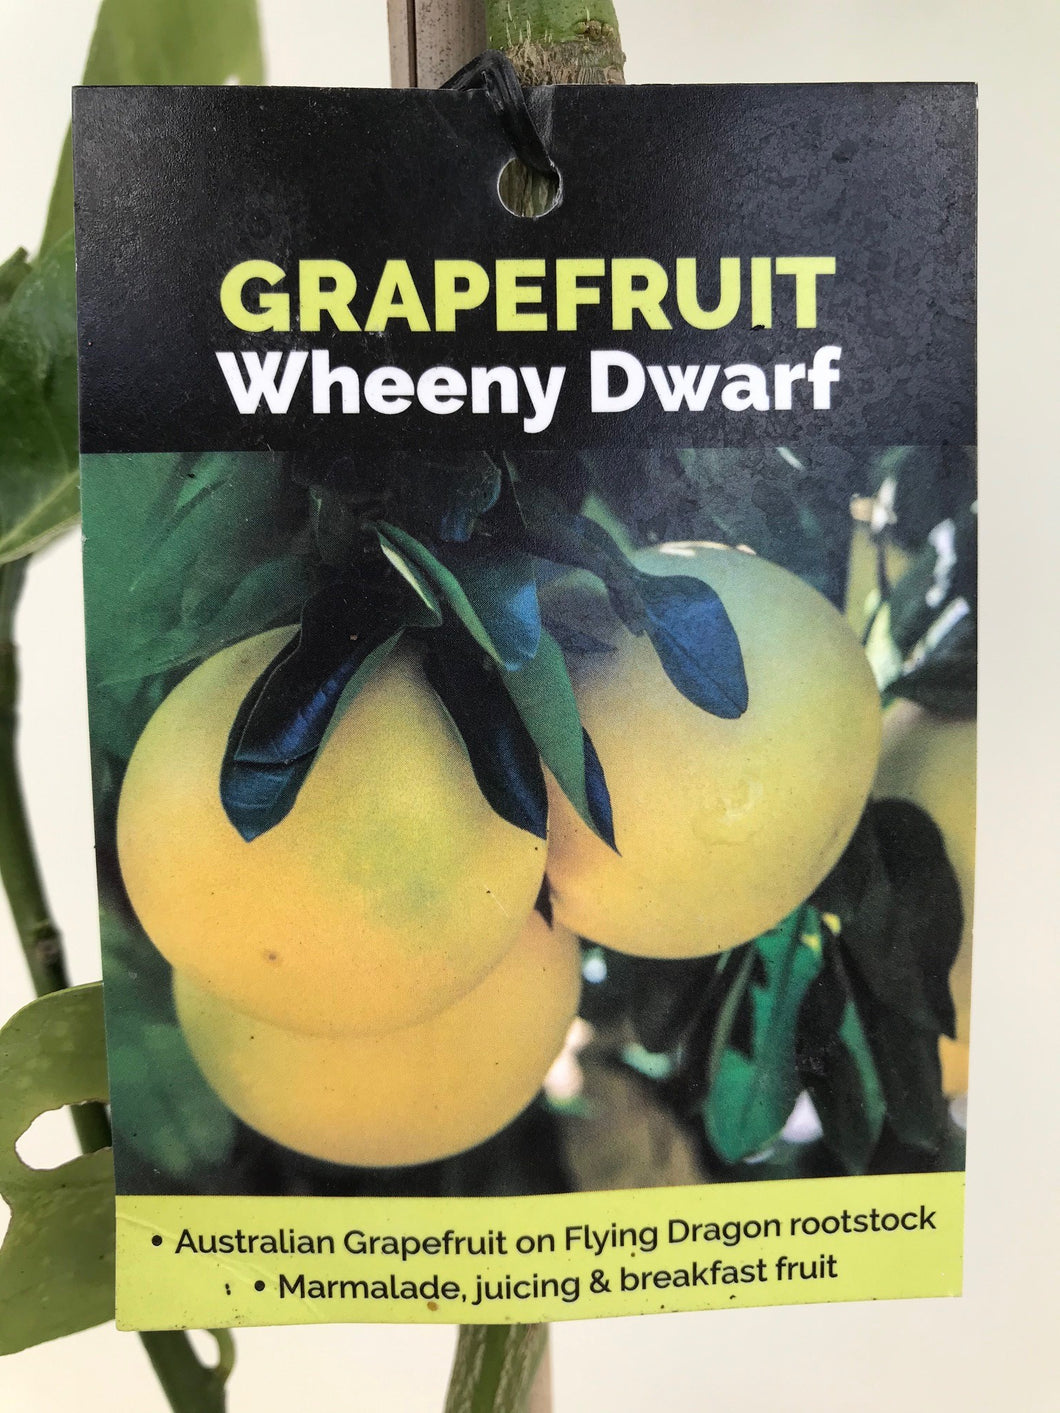 Grapefruit Wheeny Dwarf